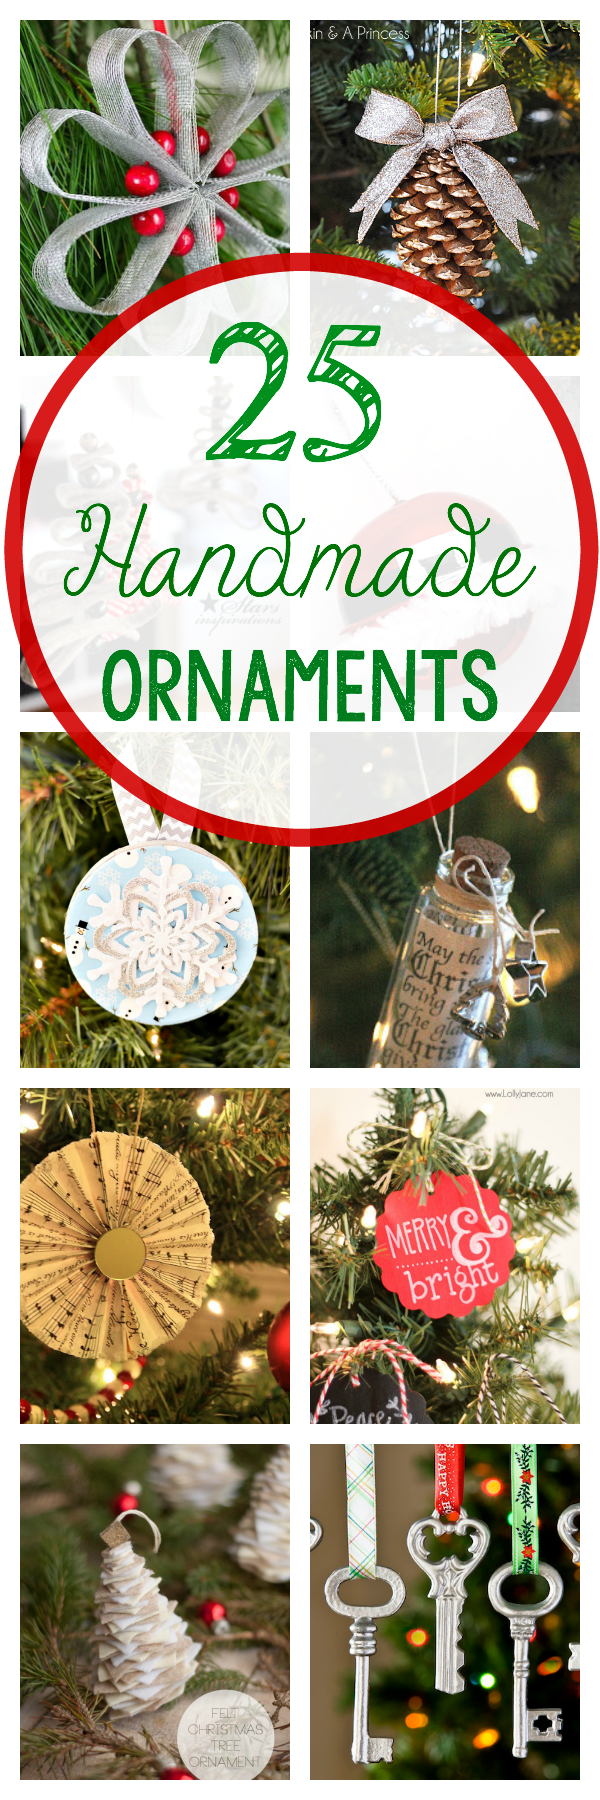 25 DIY Christmas Ornaments to make for your tree this year. These cute DIY Christmas ornaments are perfect to make-whether for the kids or for you. #Christmas #ornaments #crafts